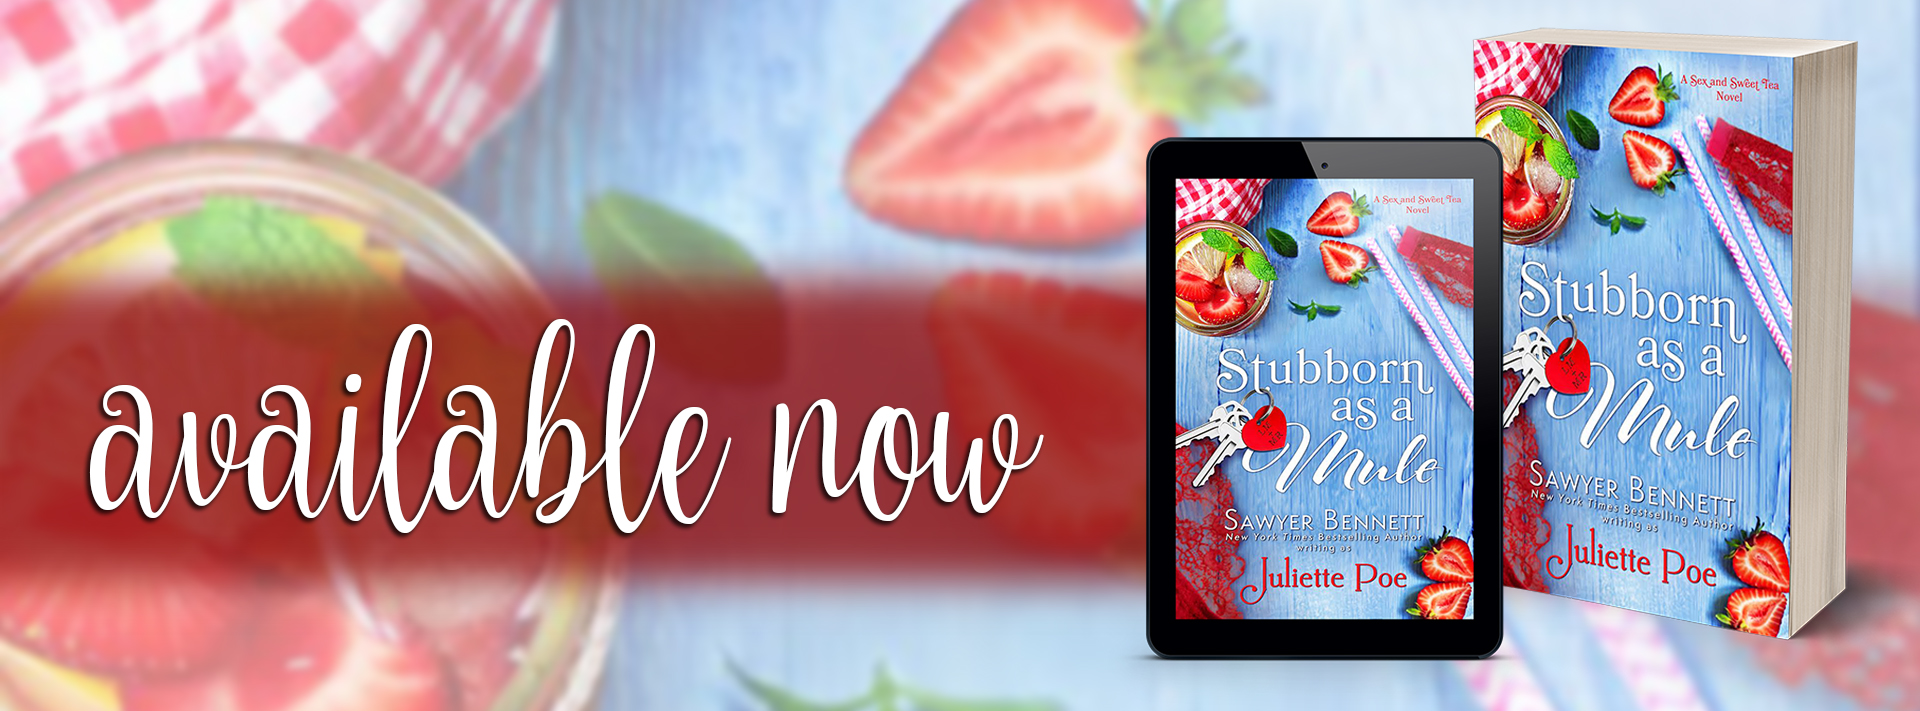 Blog Tour Review:  Stubborn as a Mule by Juliette Poe